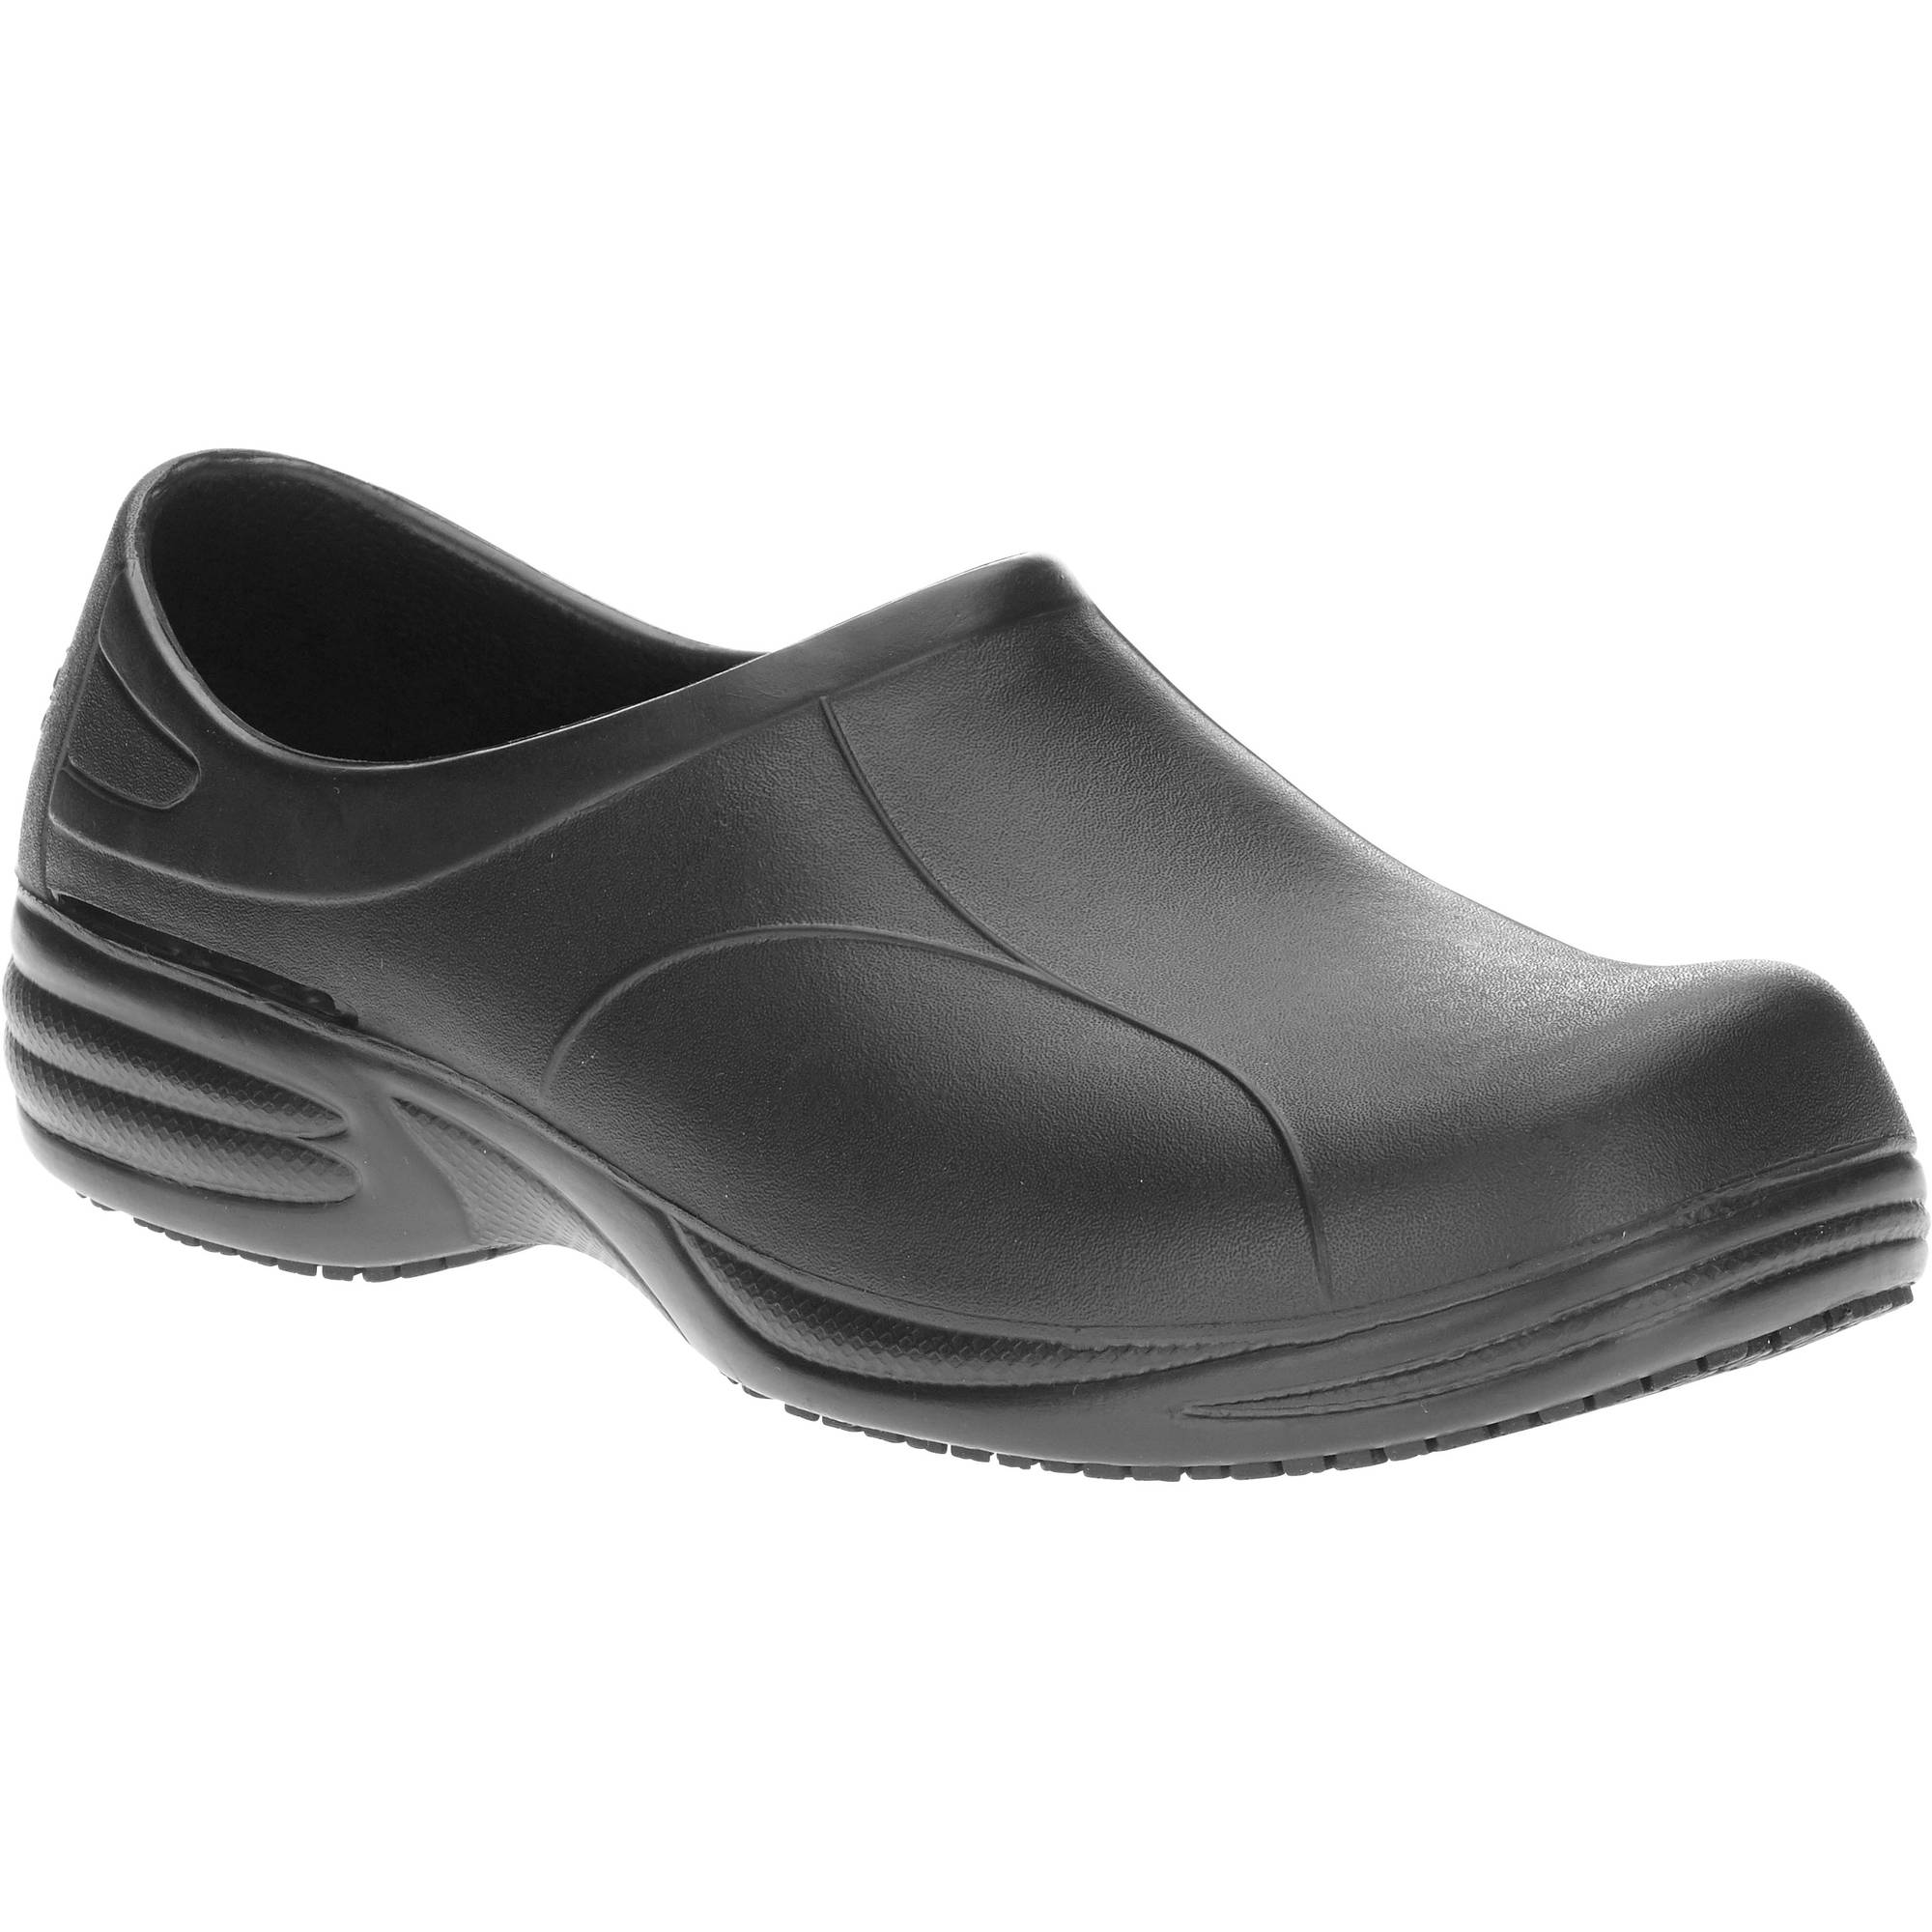 Tredsafe Women S Shoes